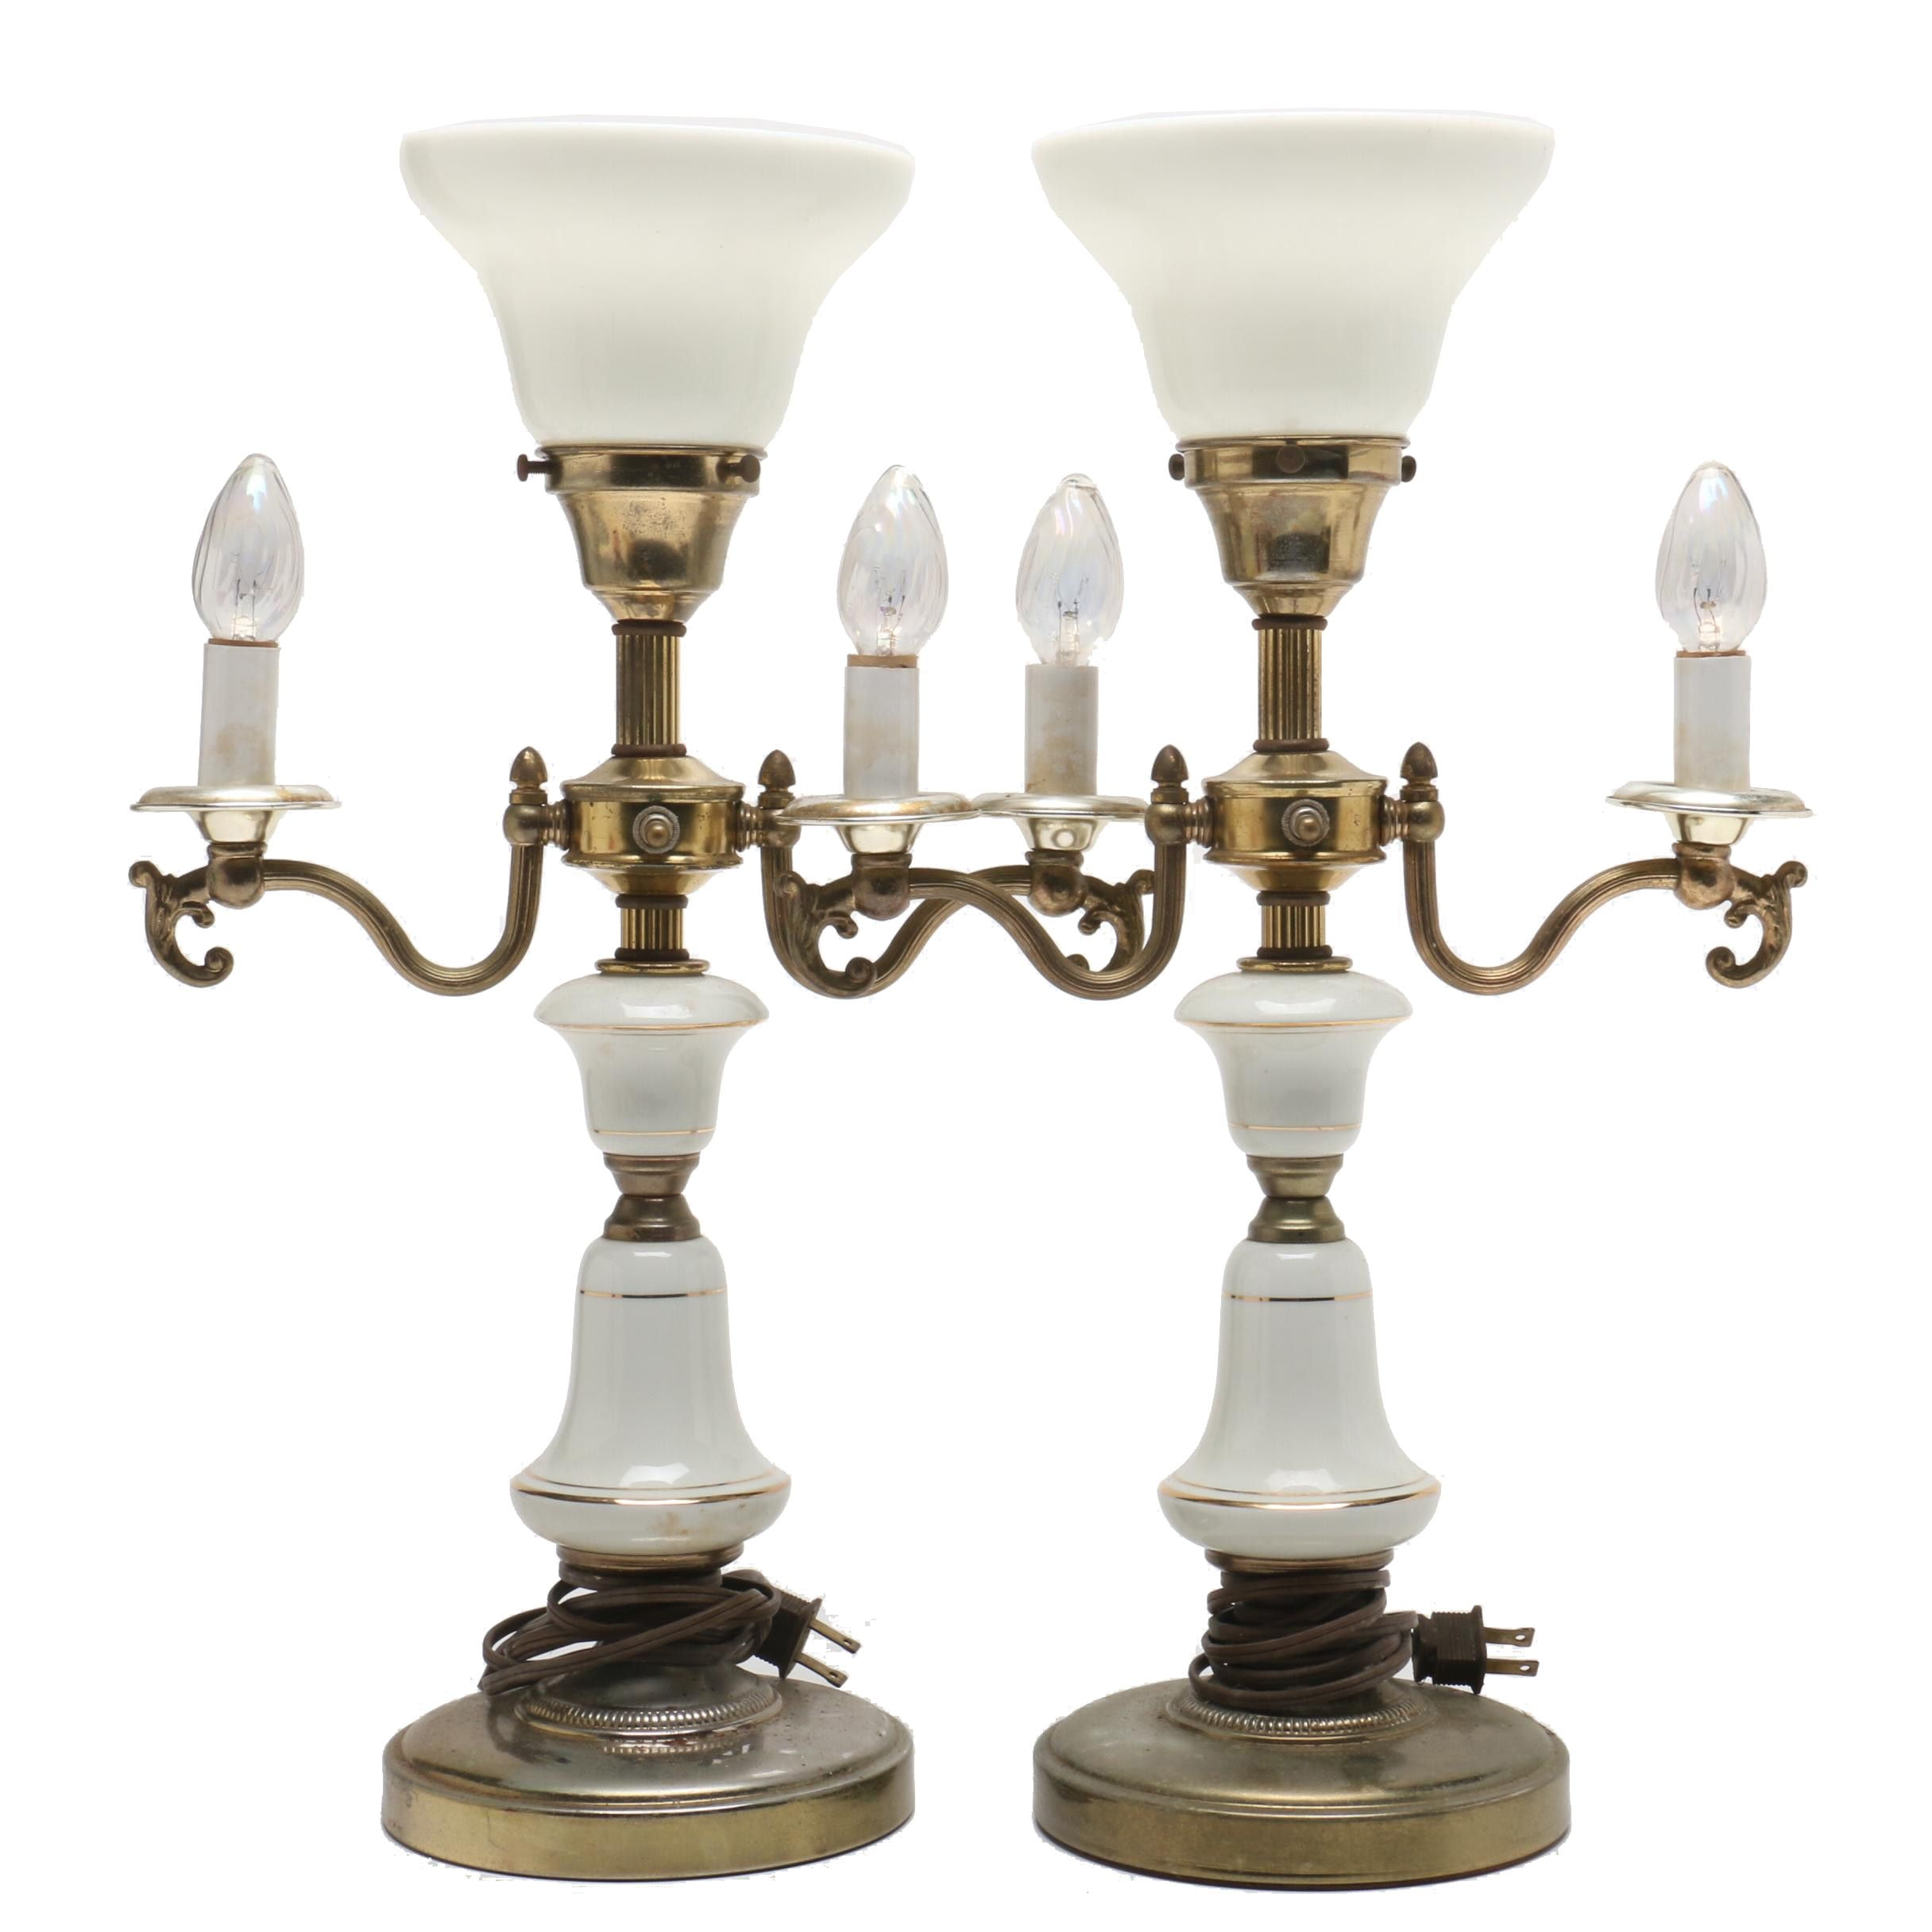 Brass and Porcelain Double-Arm Torchiere Table Lamps